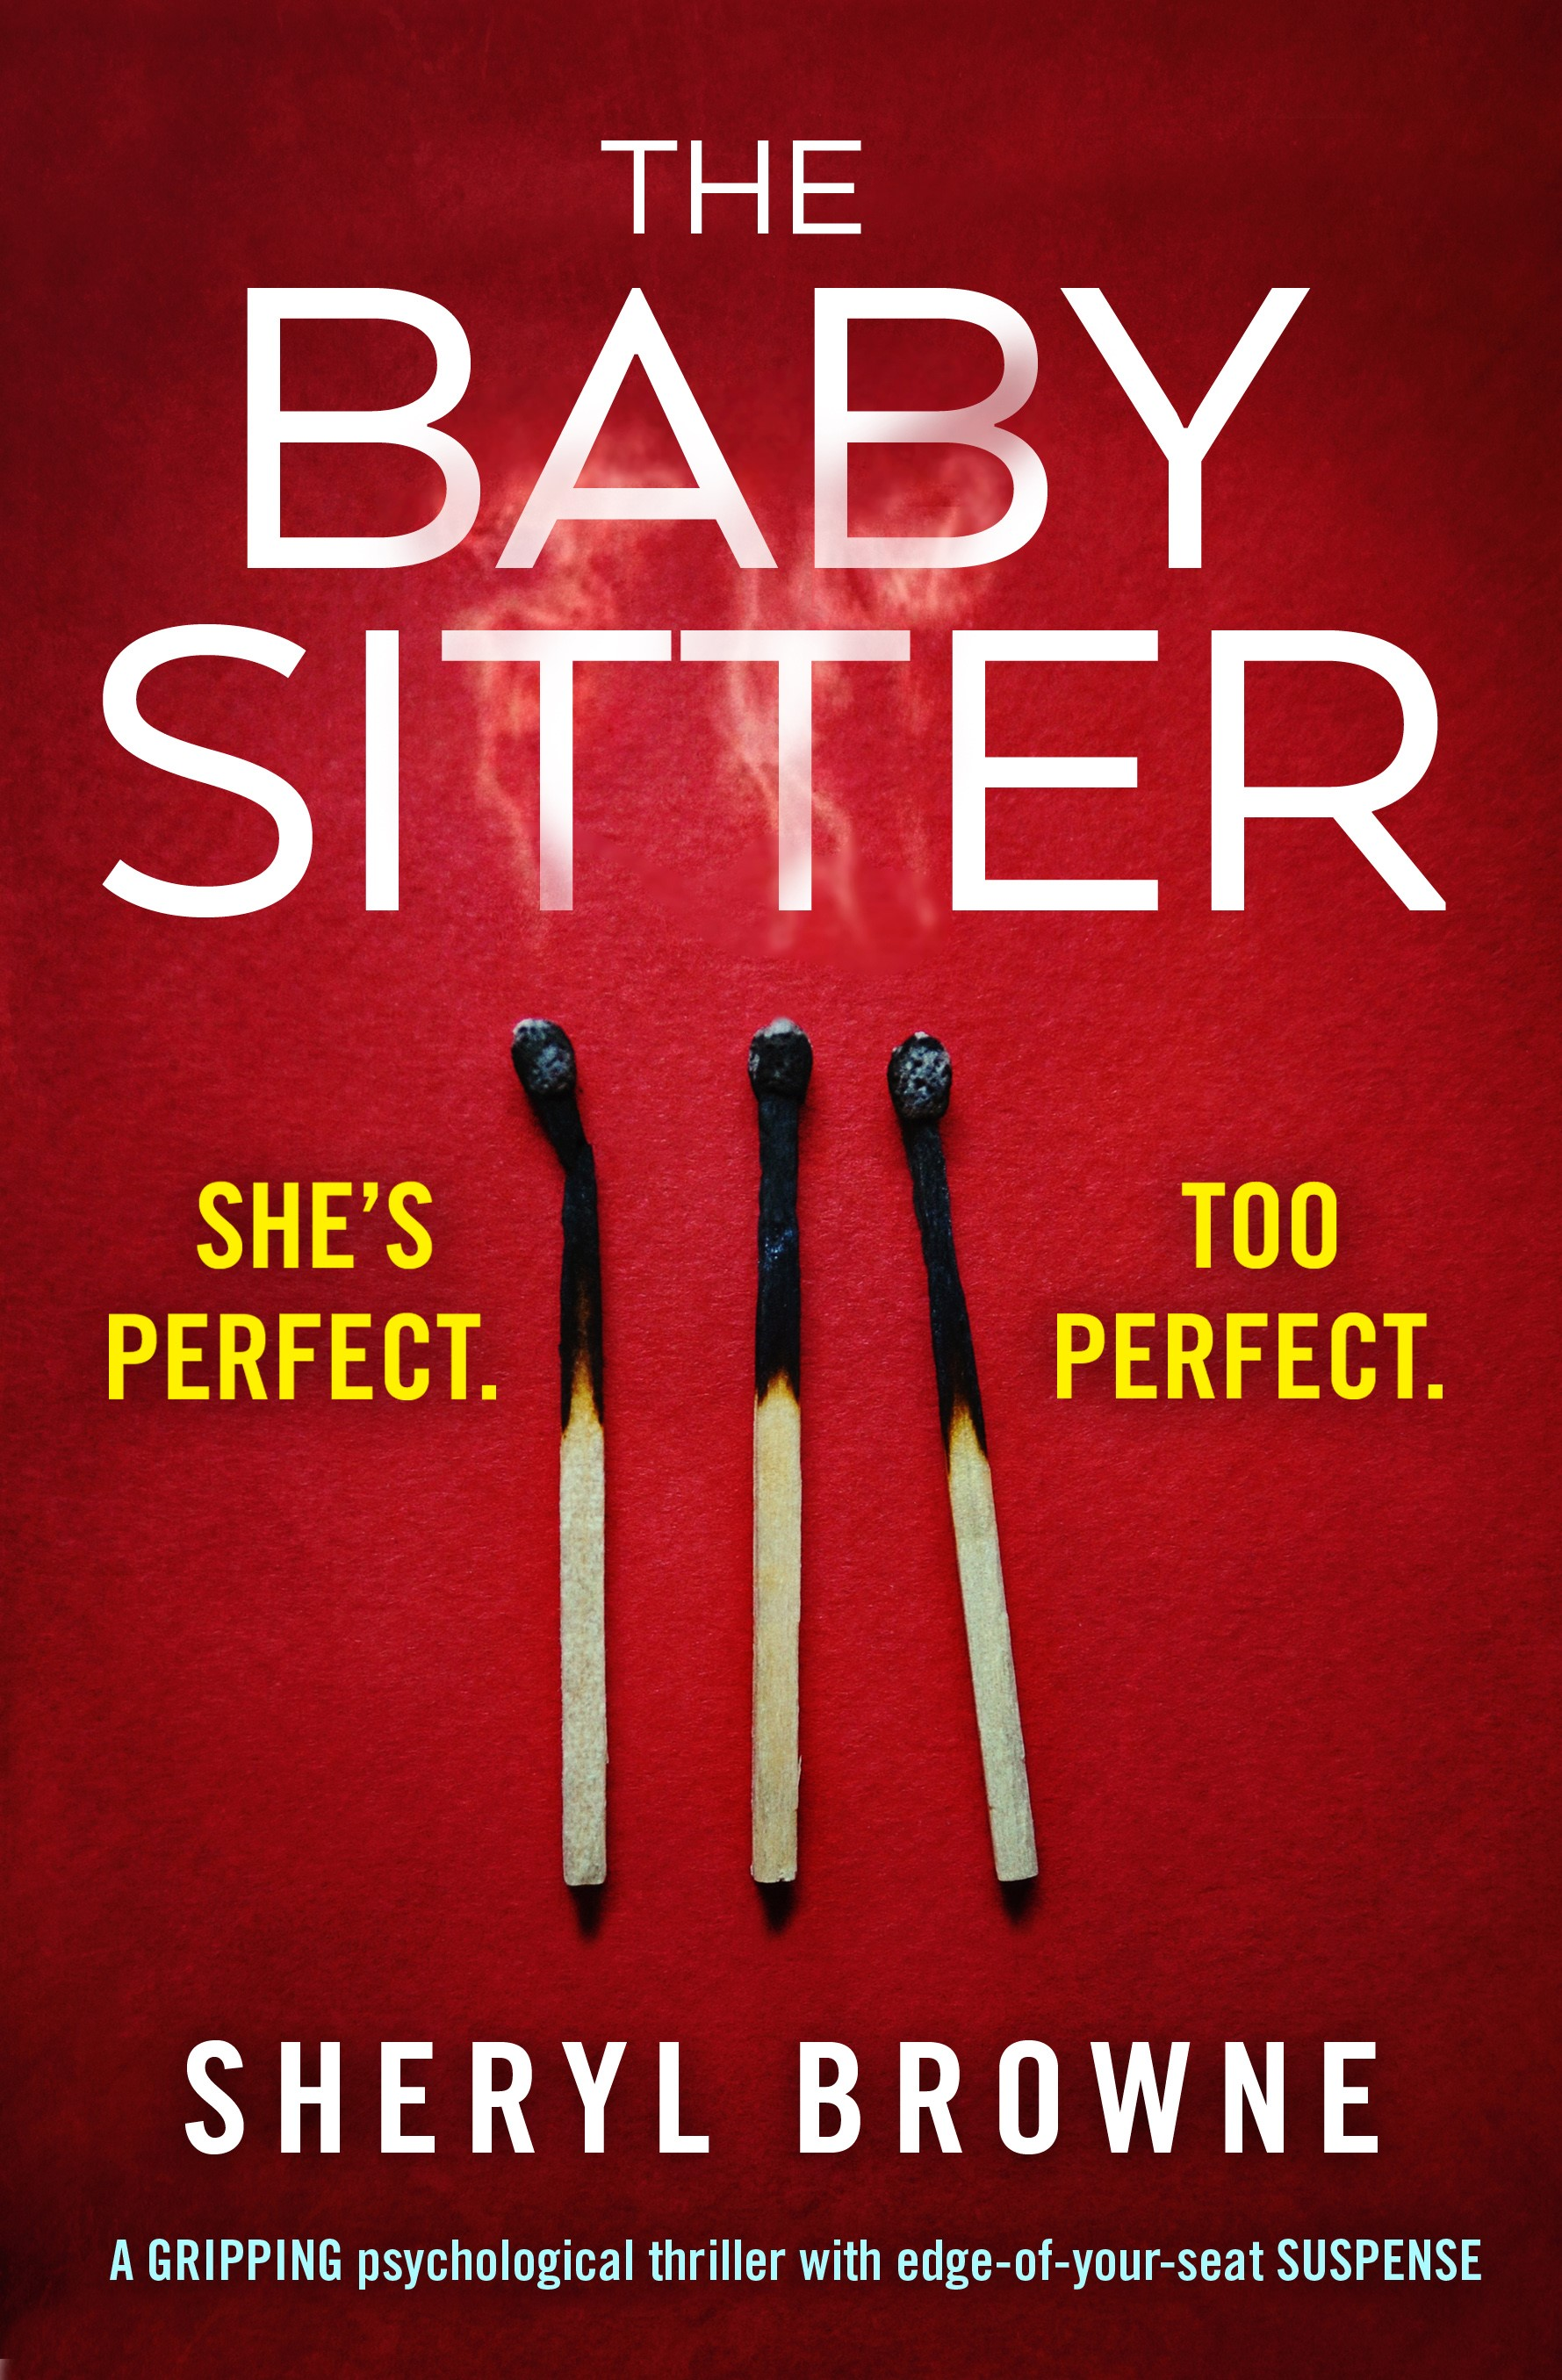 I am back on track! #booknews #TheBabysitter coming soon from @bookouture #Fridayblogs